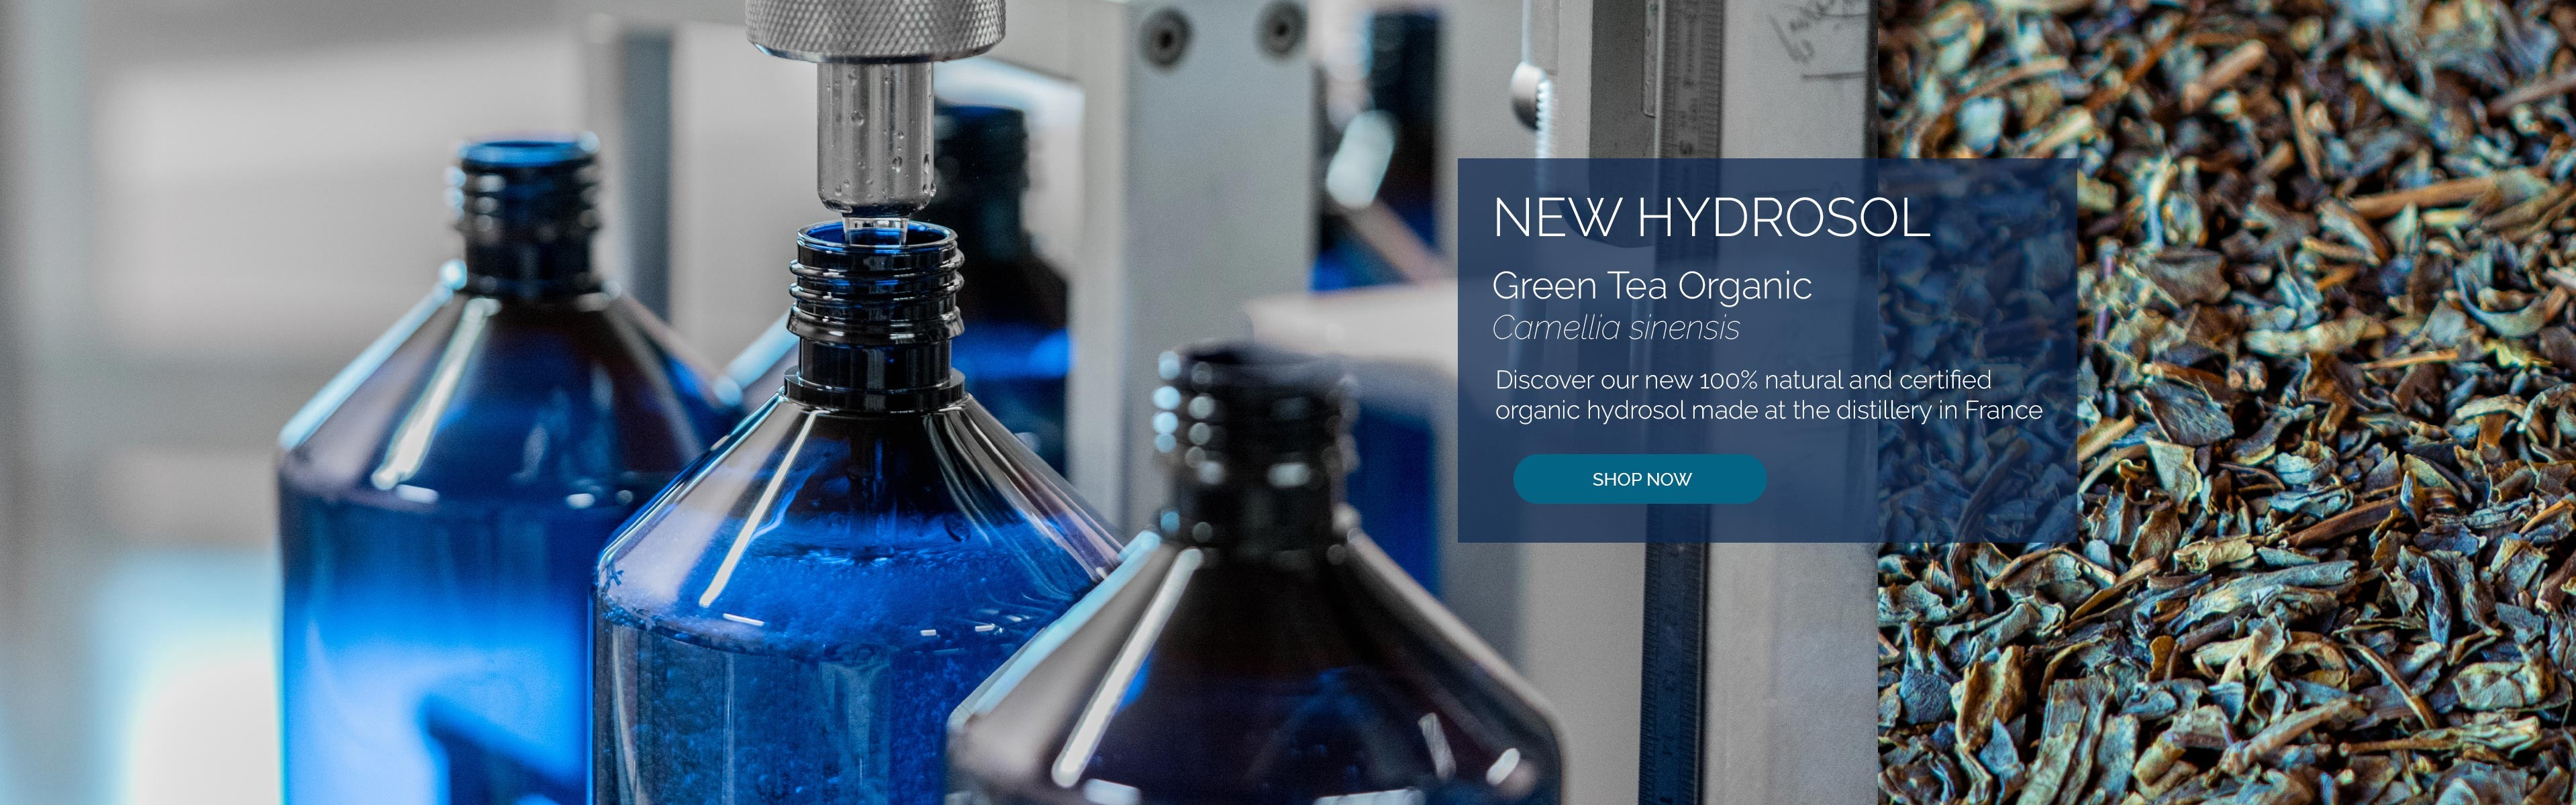 Green Tea Organic Hydrosol. Discover our 100% natural and organic hydrosol made at the Distillery in France.